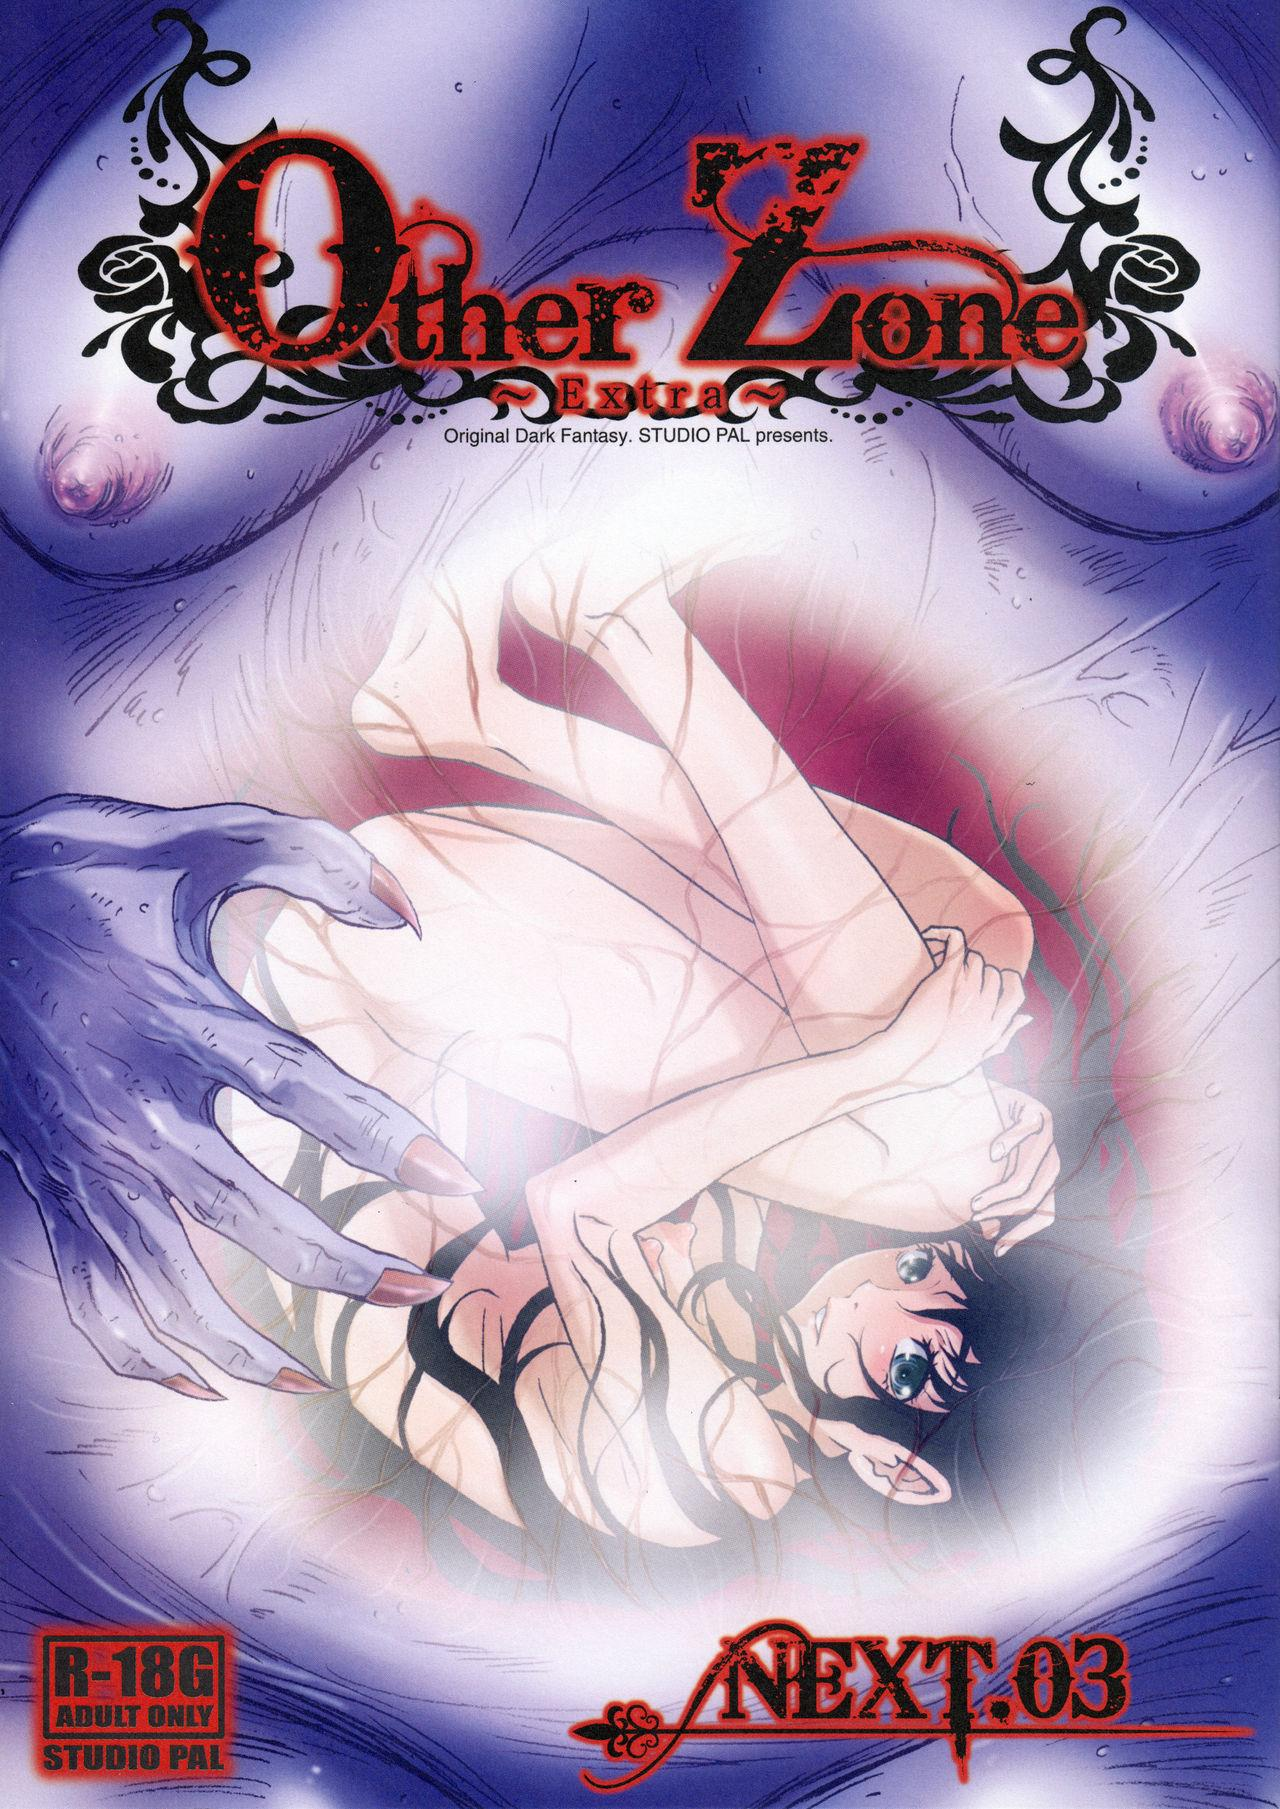 Other Zone Next.03 0